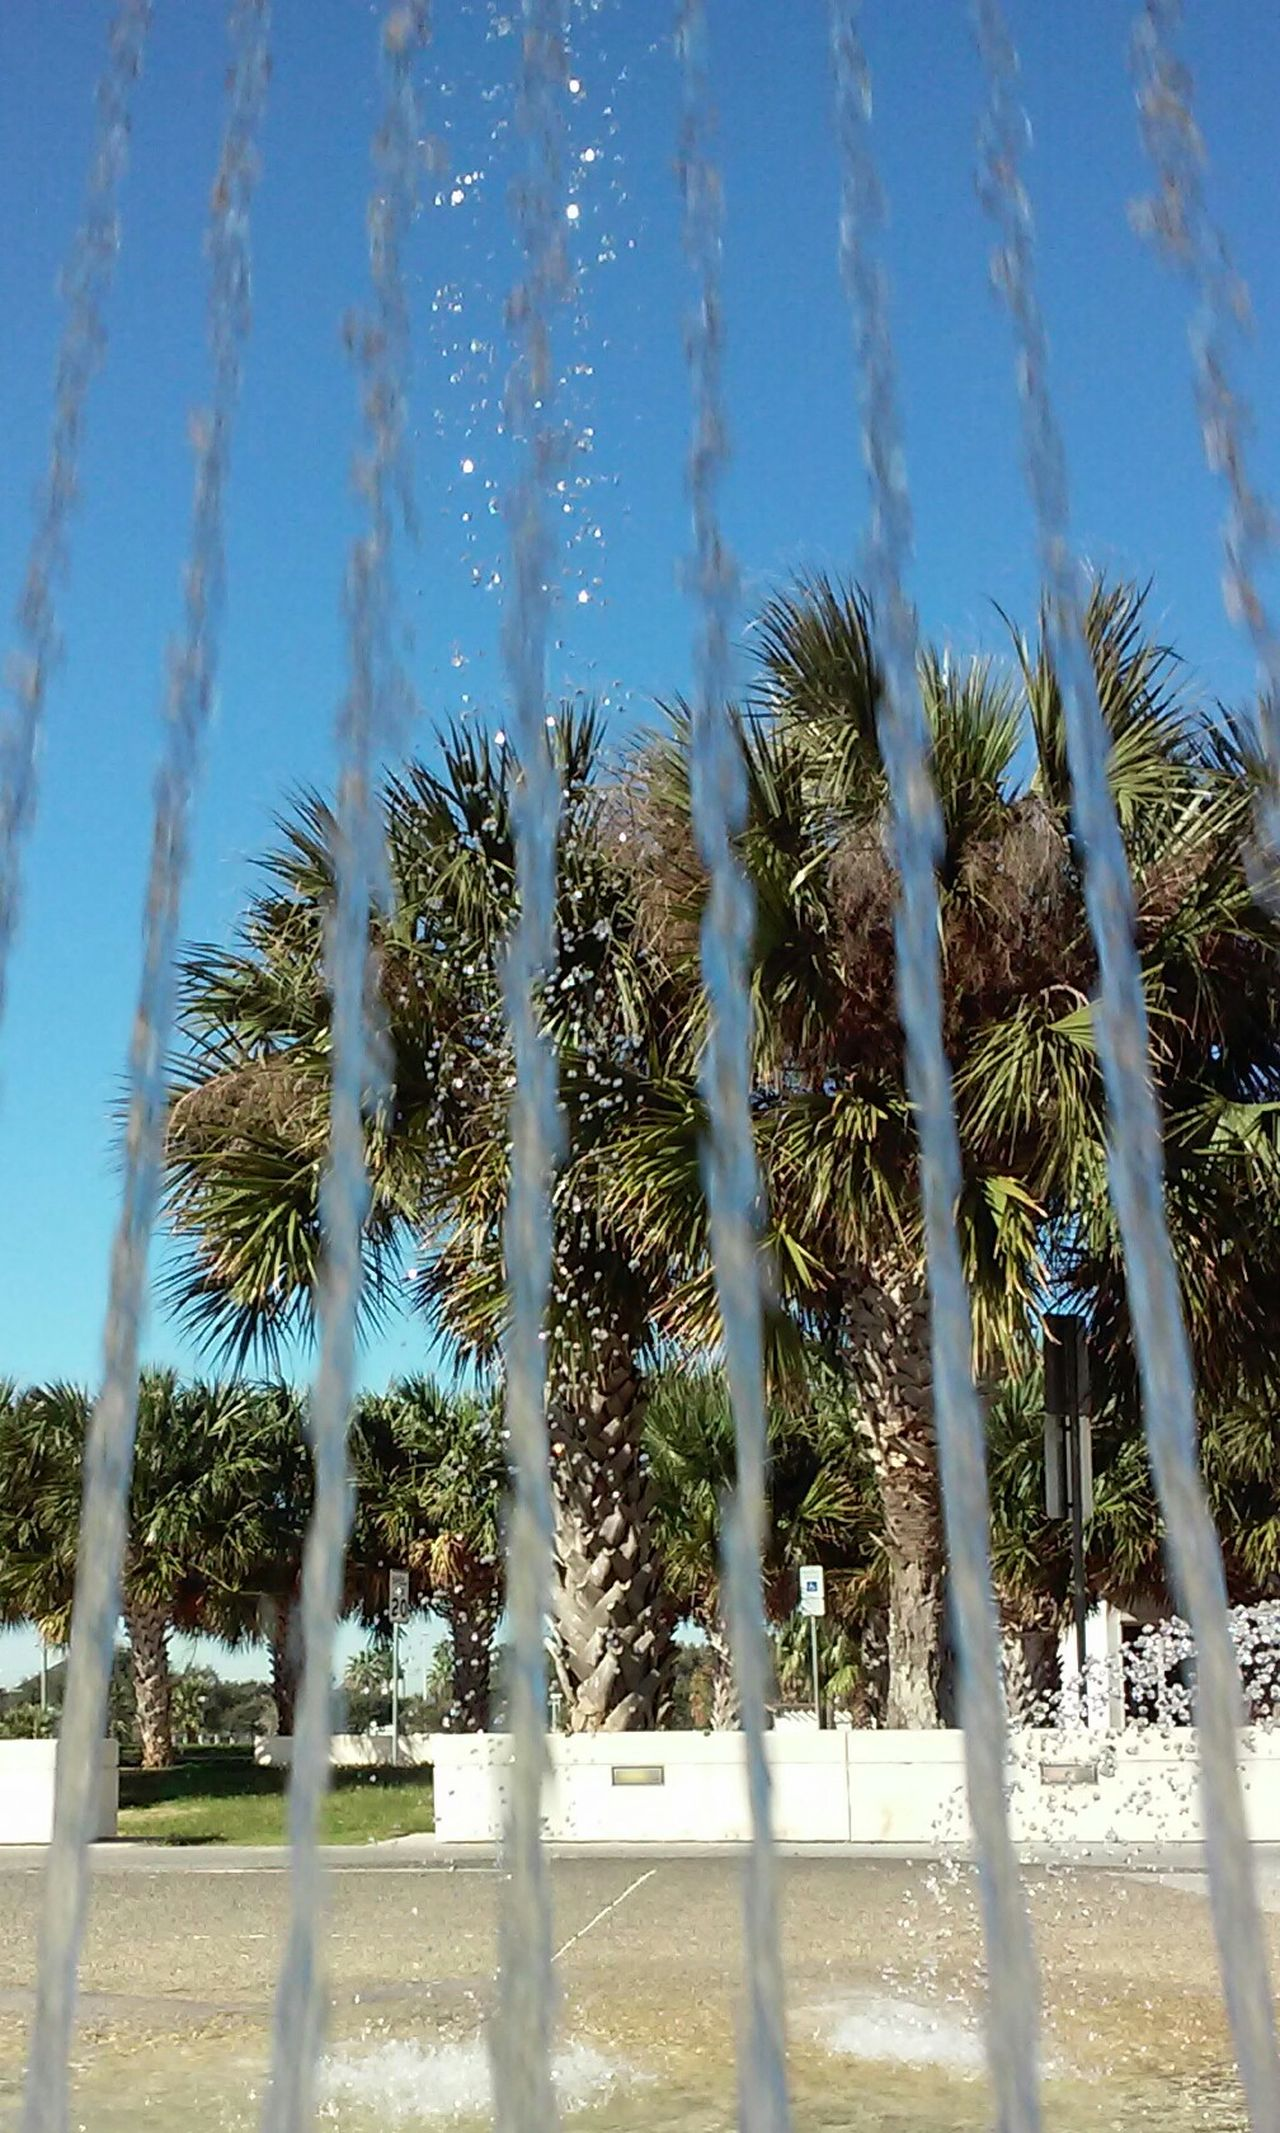 Cellphone Photography Water Streams Palm Trees Bayfront Taking Photos Enjoyin Life Keep Smiling Beautiful Day Beauty In Ordinary Things Finding Beauty In The Little Things have a sweet weekend!! 💕